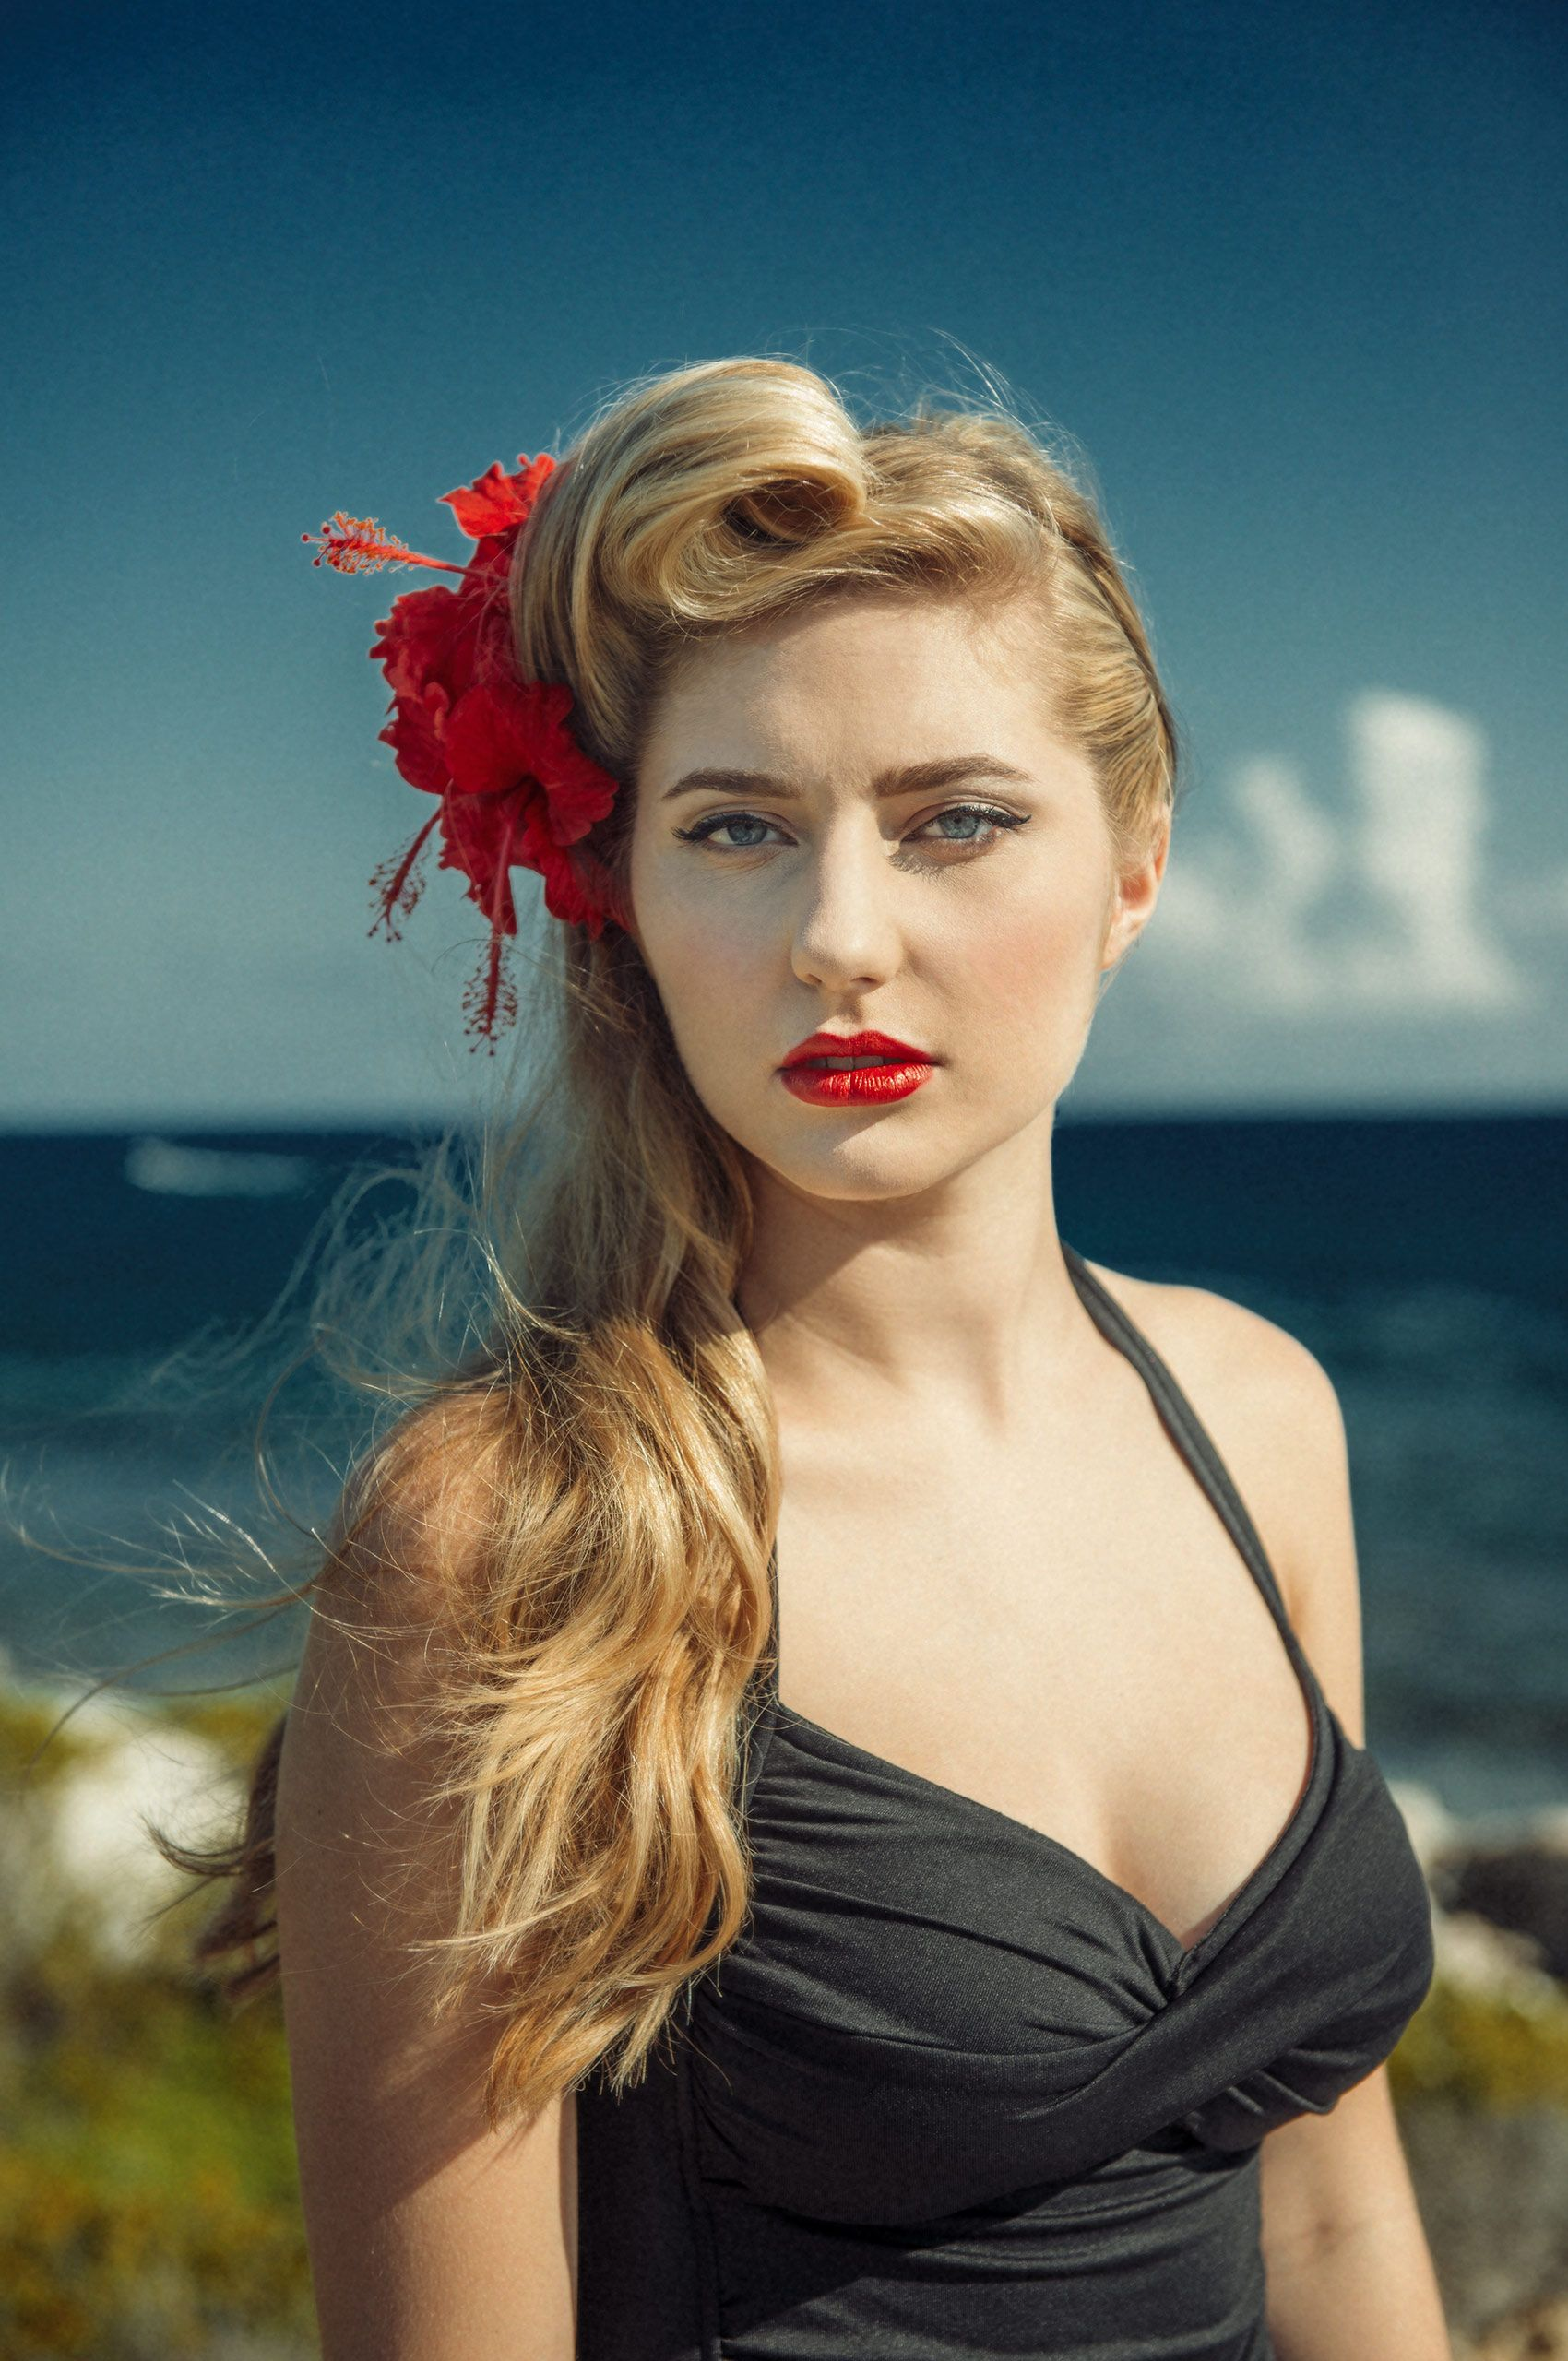 Retro-Young-Woman-Beach-HenrikOlundPhotography.jpg